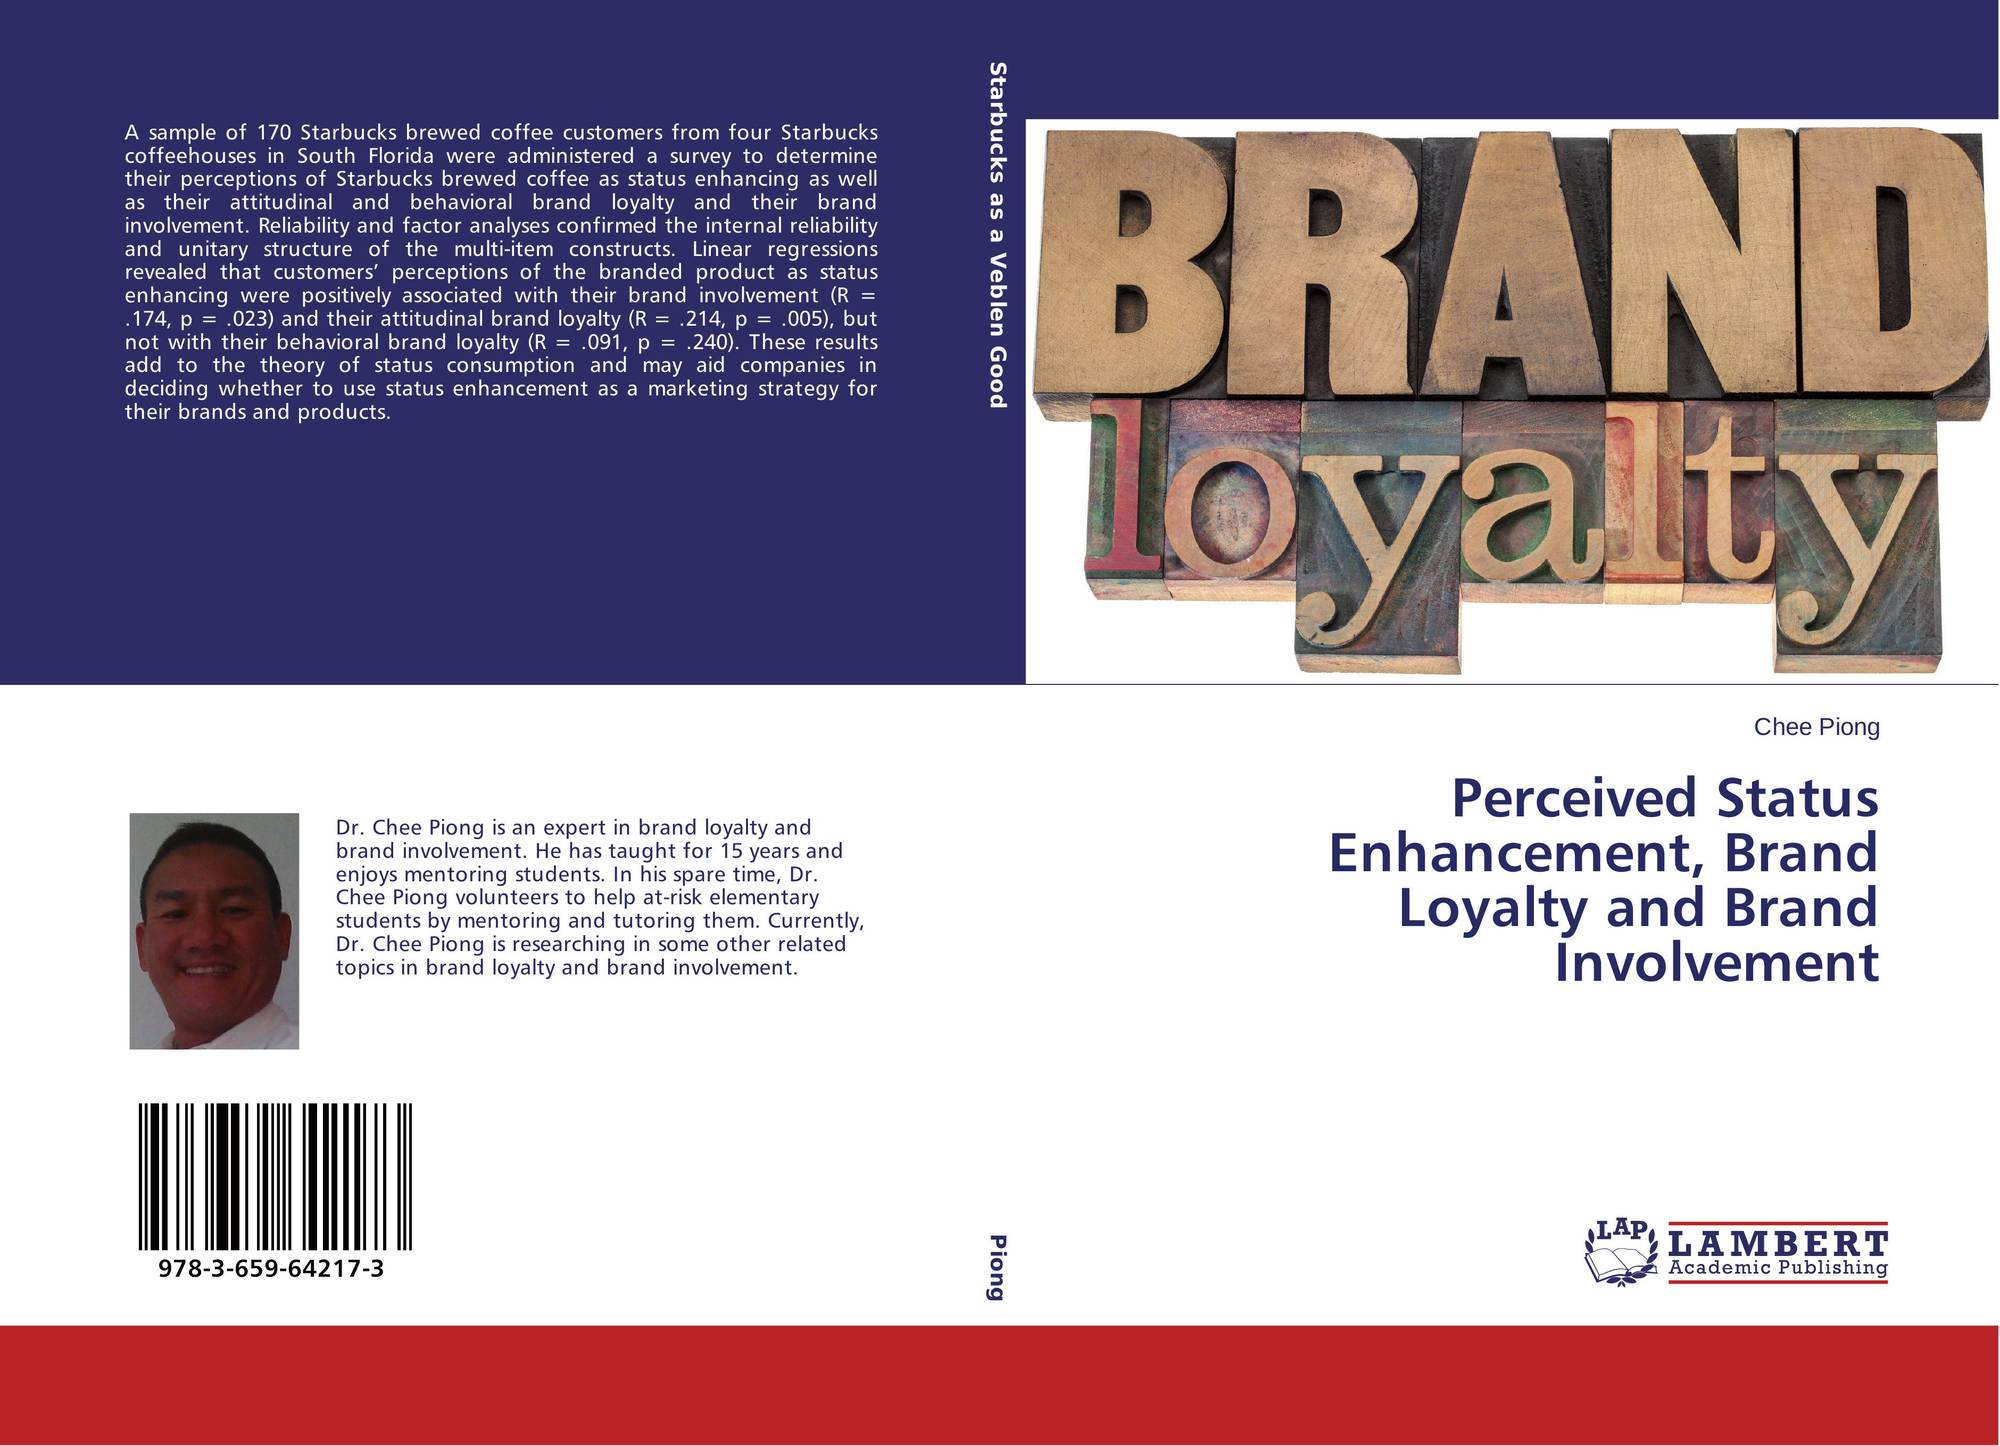 brand loyalty and involvement in customers Brand loyalty as one of the main antecedents of customer engagement paper examines brand loyalty's impact on customer engagement.